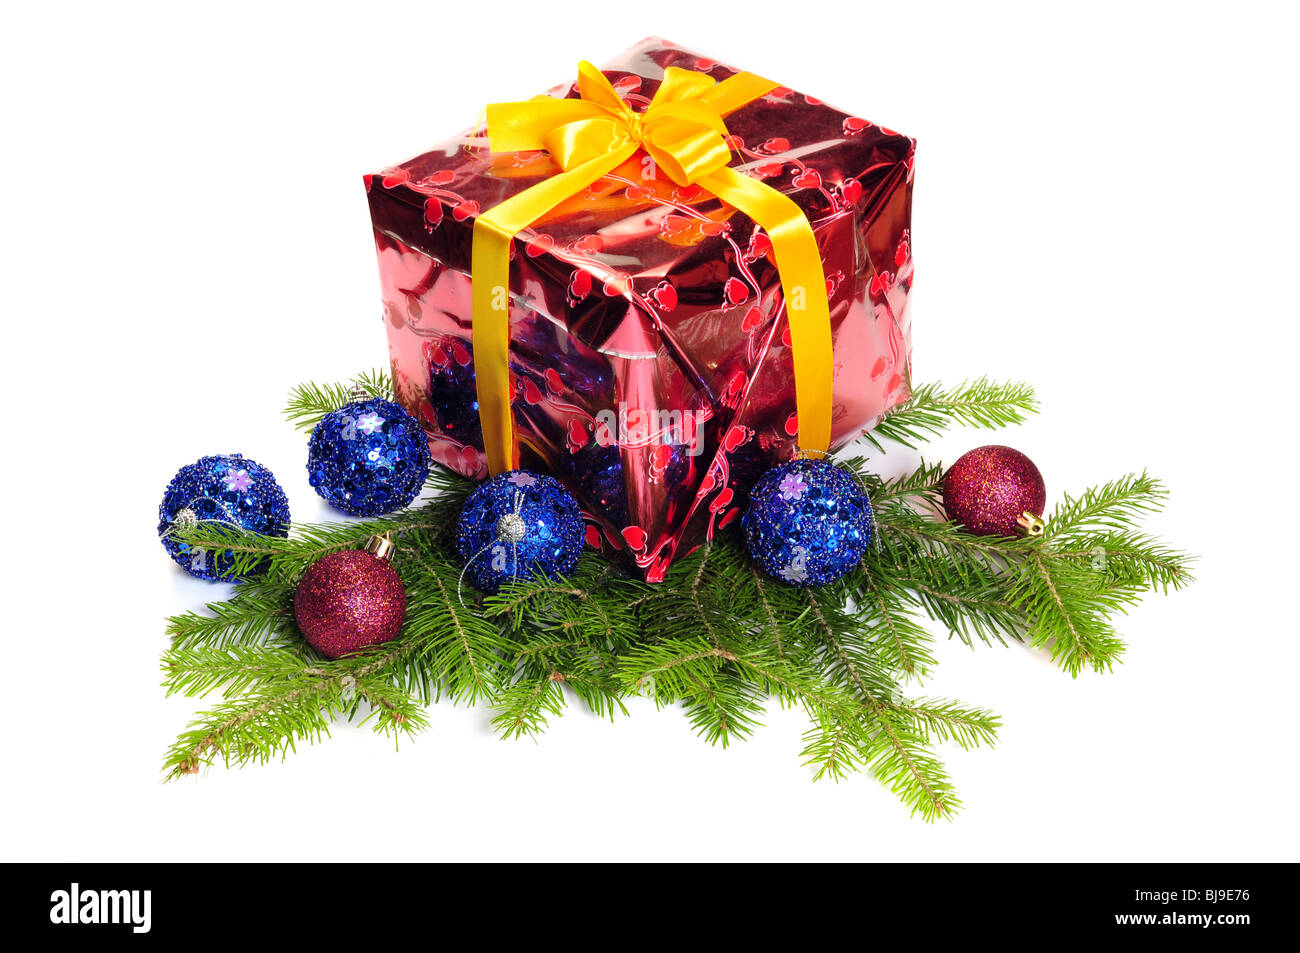 Gift box and Christmas decoration over white - Stock Image